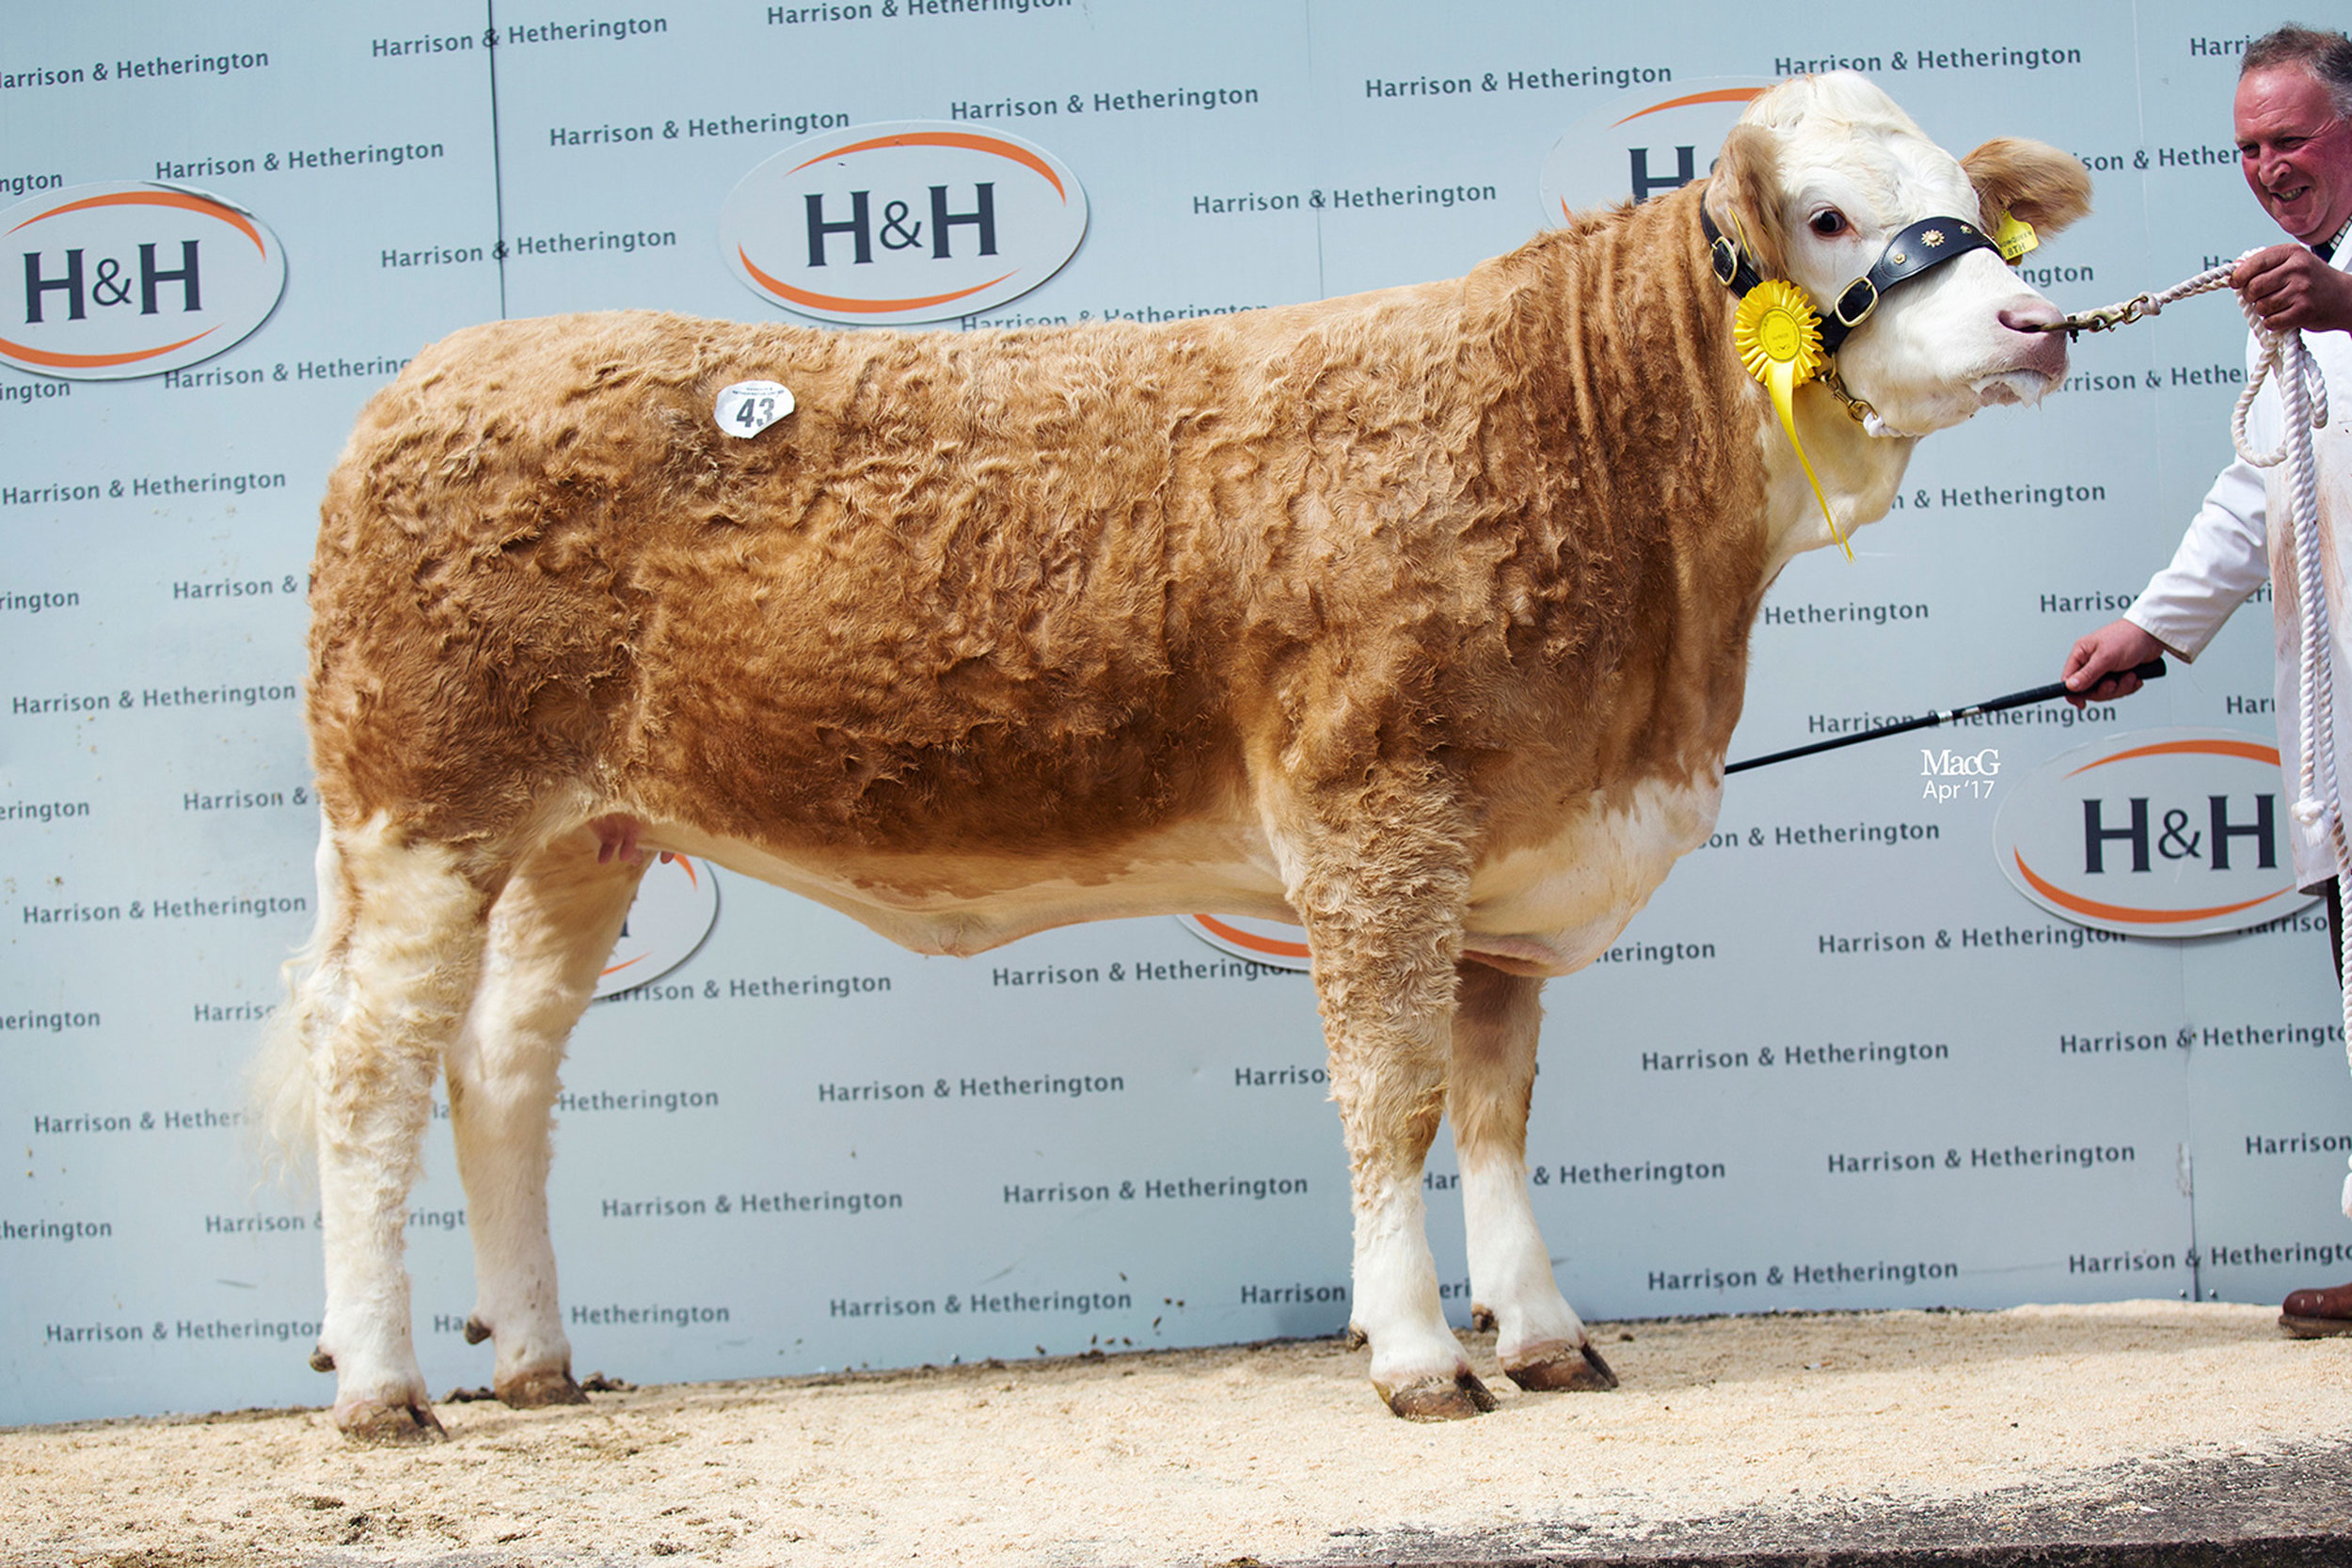 43-Williams-Snowqueen-8th-3600gns-5550.jpg